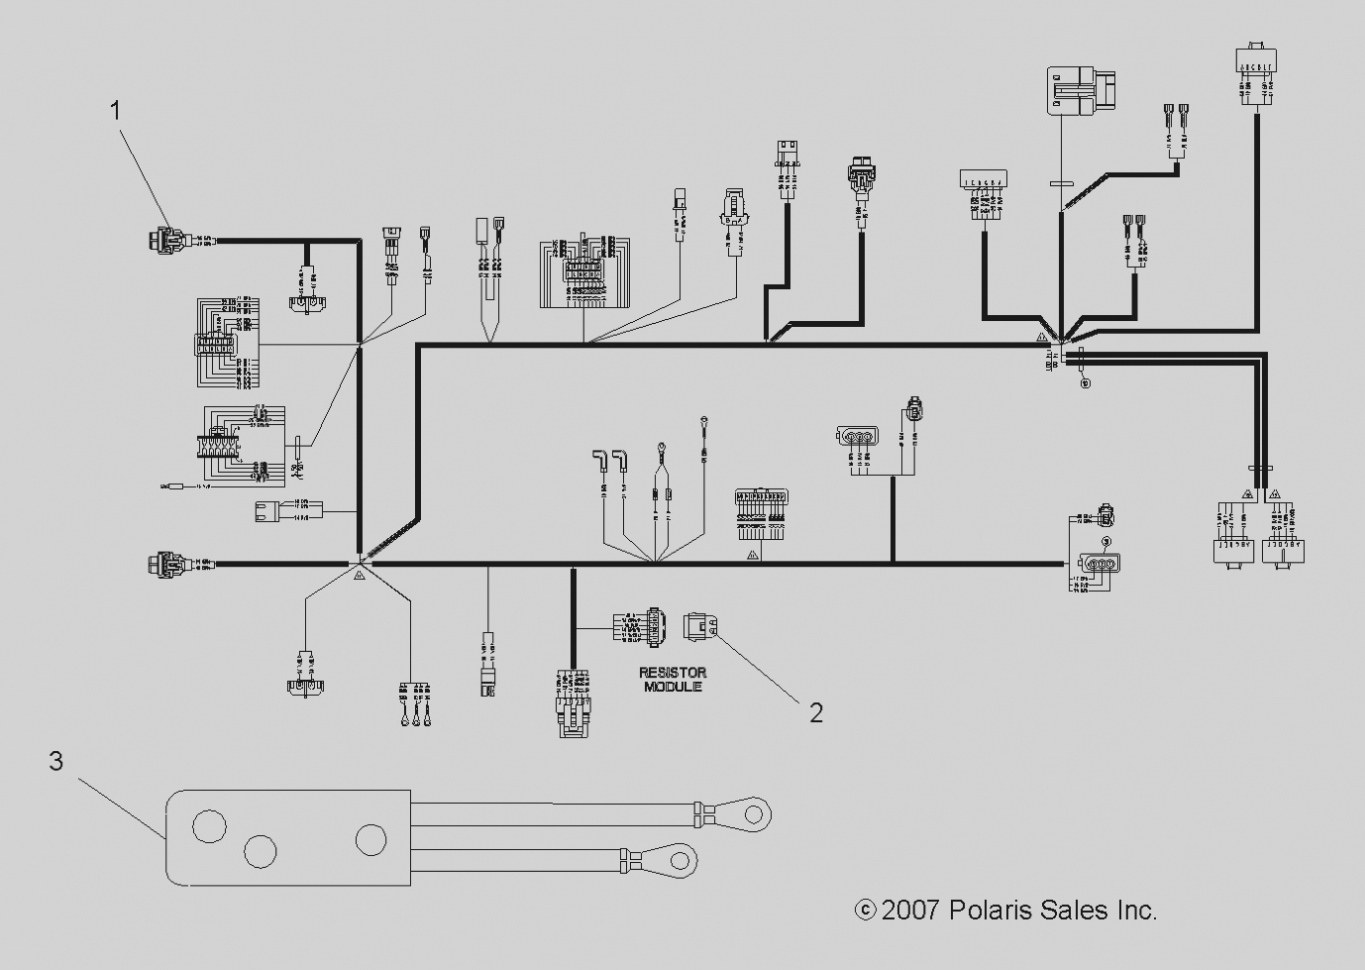 1999 polaris ranger 500 wiring diagram 2011 polaris ranger xp wiring diagram polaris ranger wiring diagram | free wiring diagram